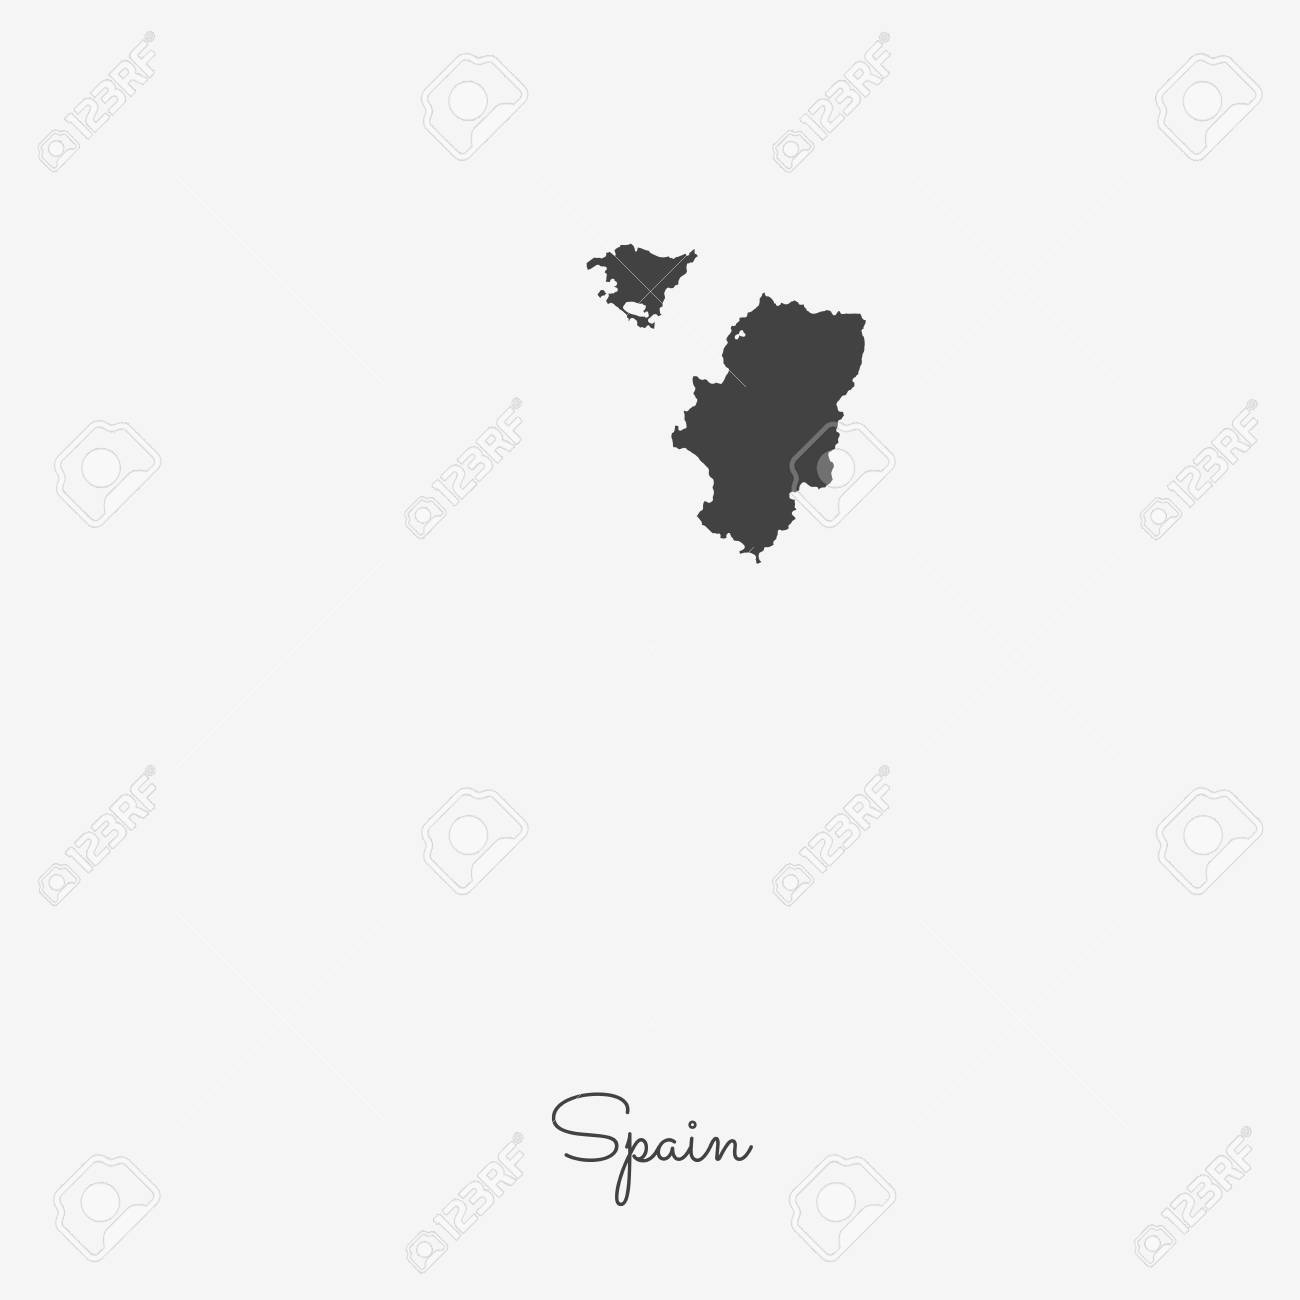 Map Of Spain With Regions.Spain Region Map Grey Outline On White Background Detailed